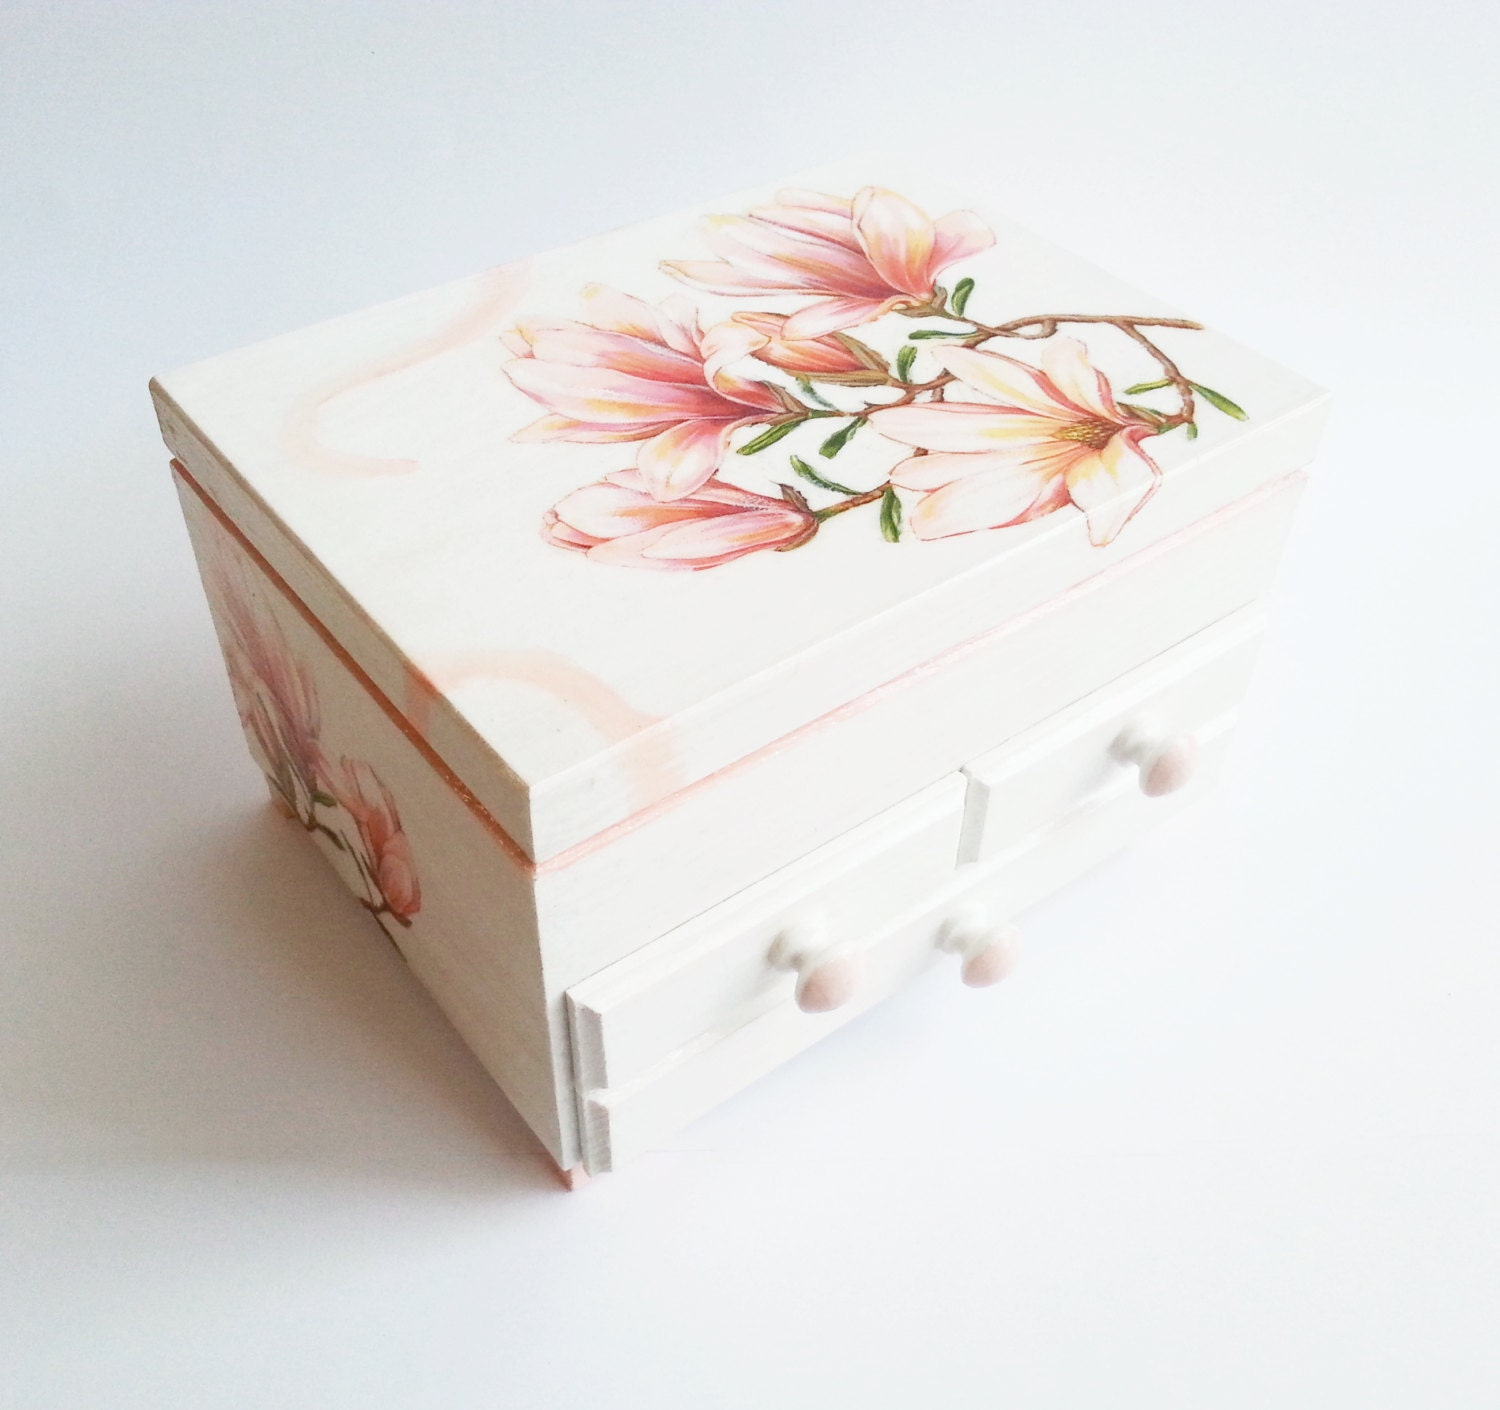 Custom order personalized jewelry box with mirror and drawers gift idea shabby chic beautiful pink gift idea for her vintage custom colors - MKedraDecoupage